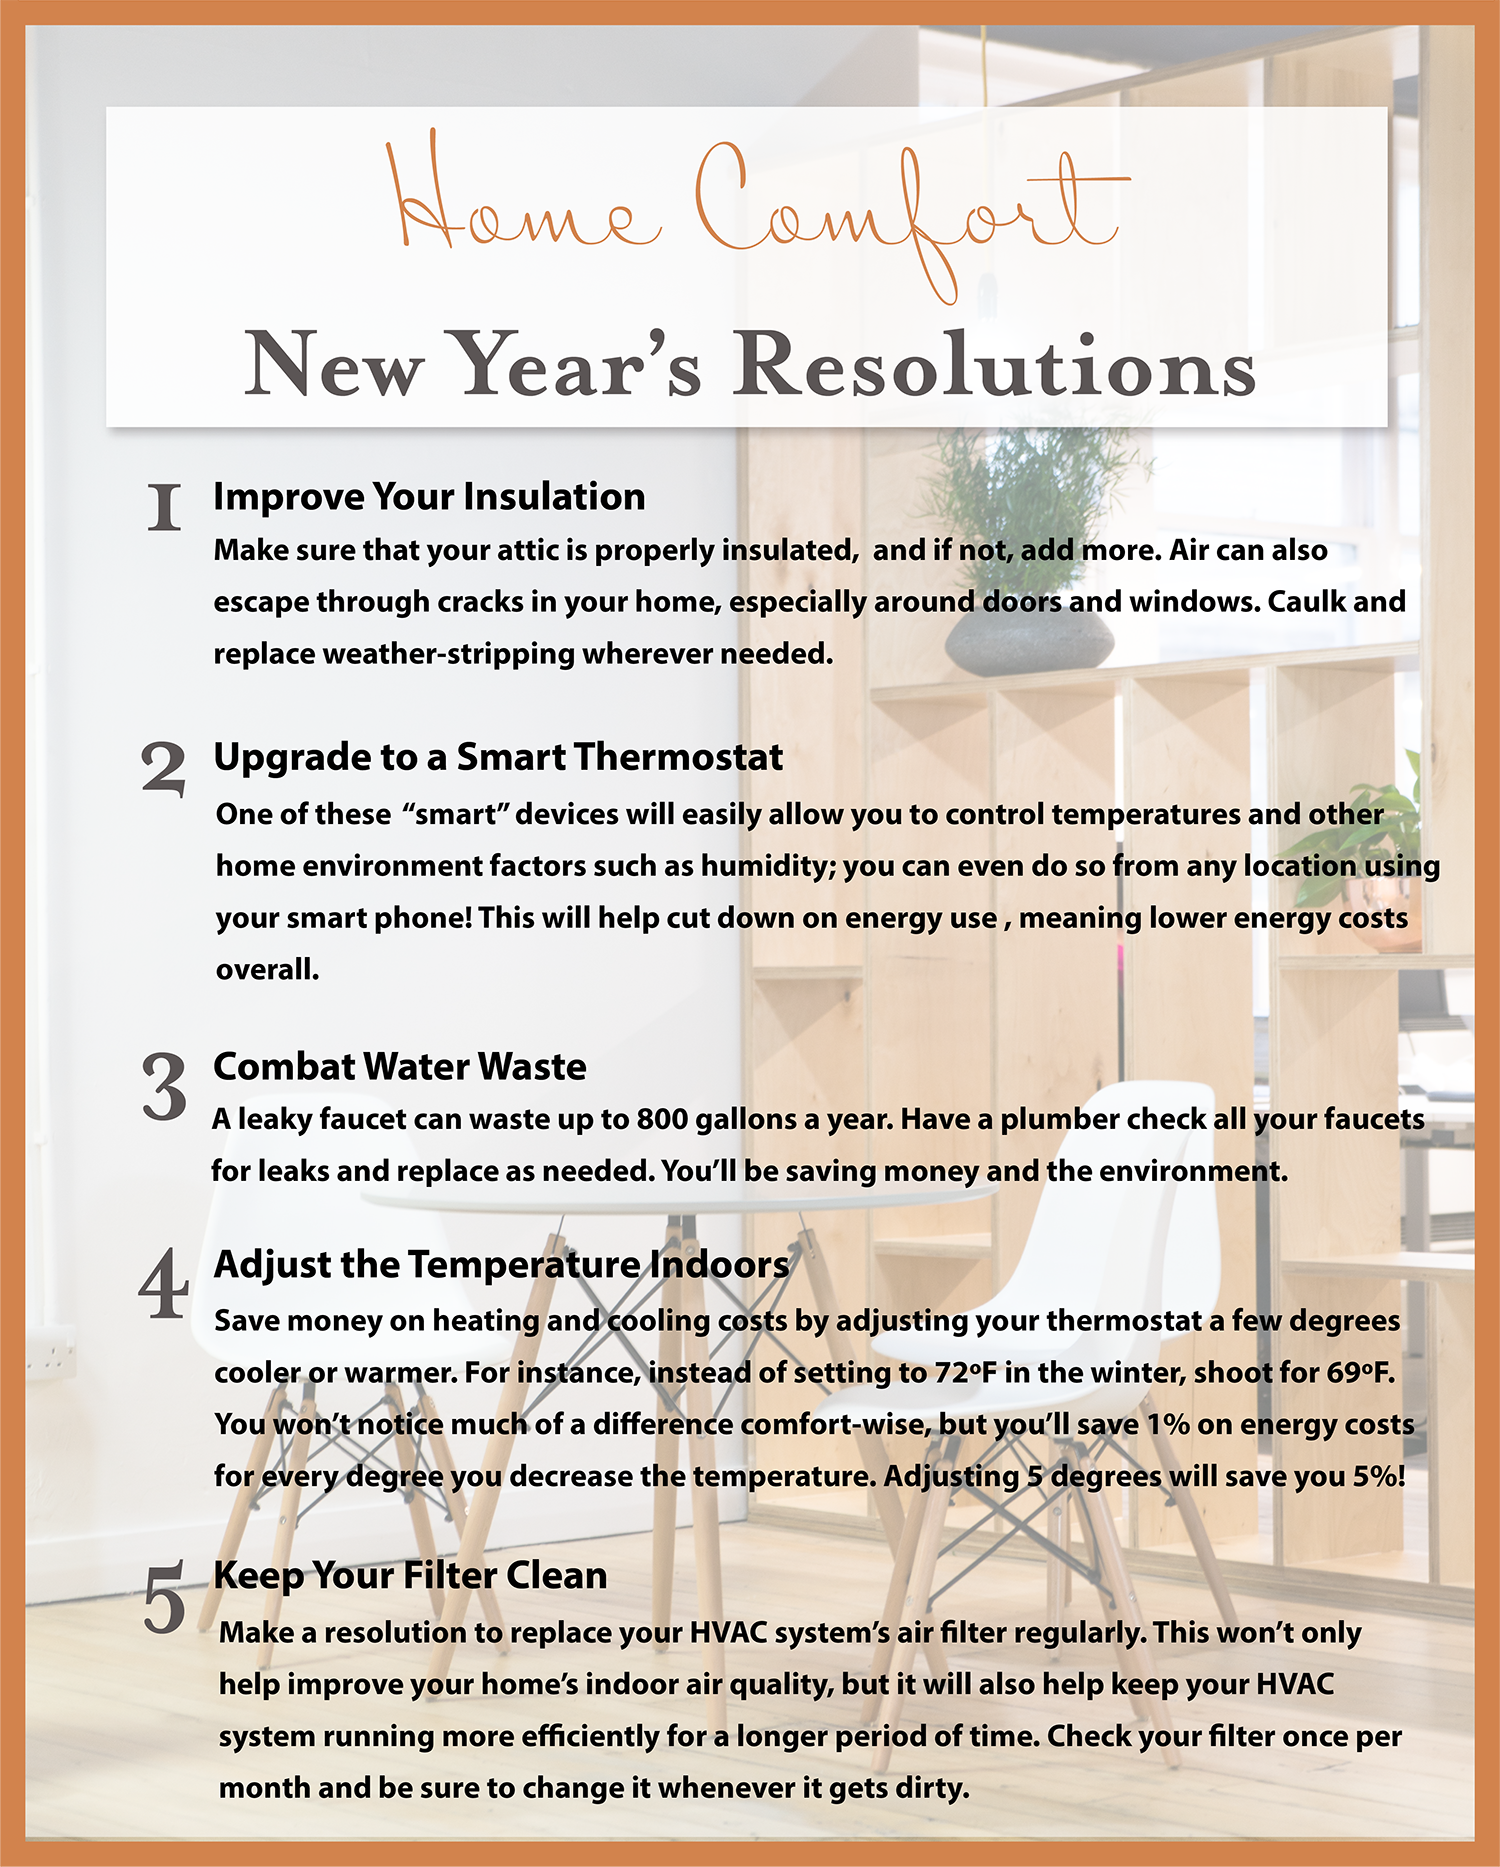 Home Comfort Resolutions